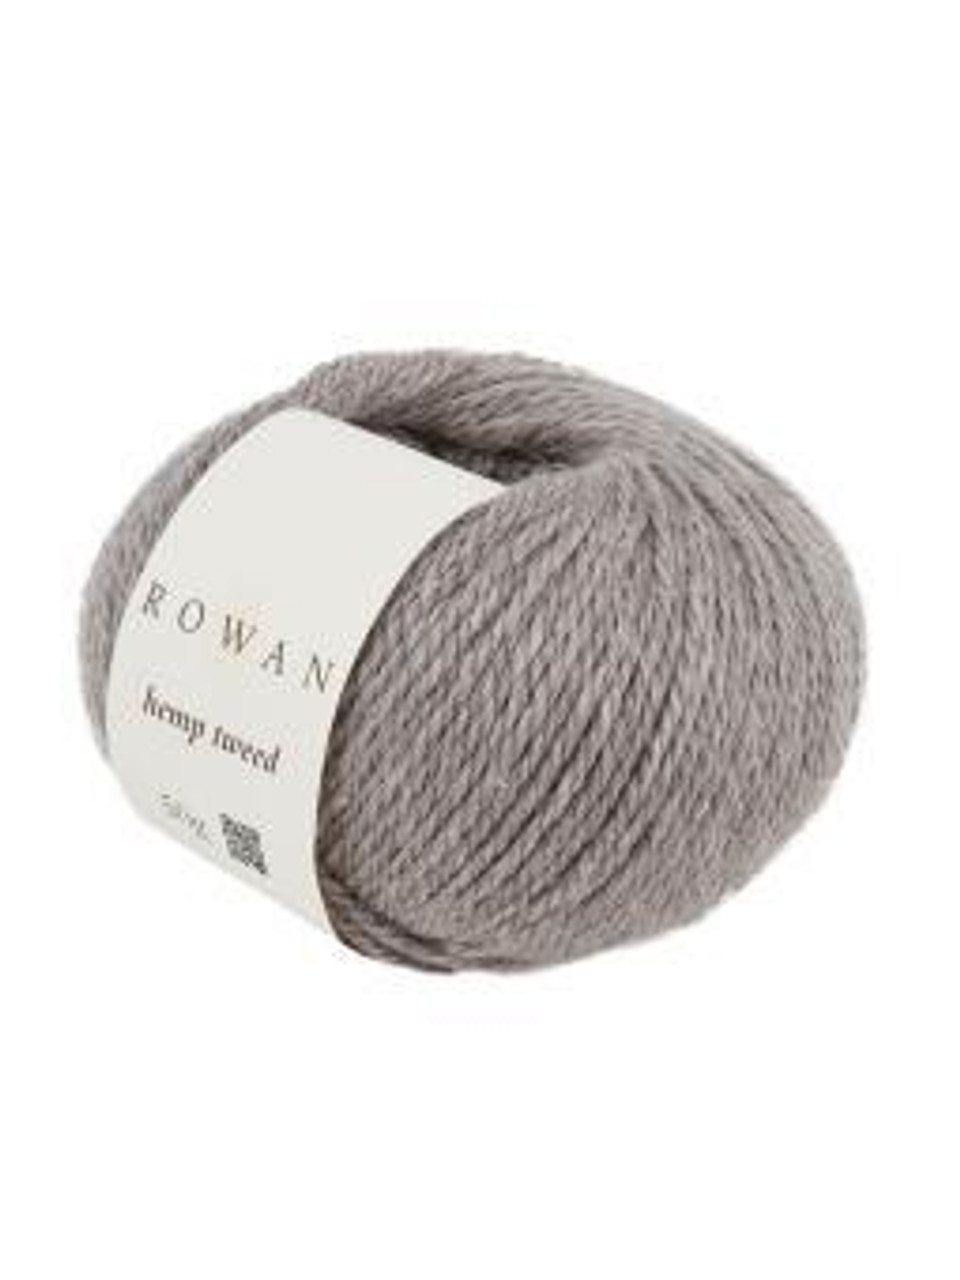 Rowan Tweed Hemp Yarn